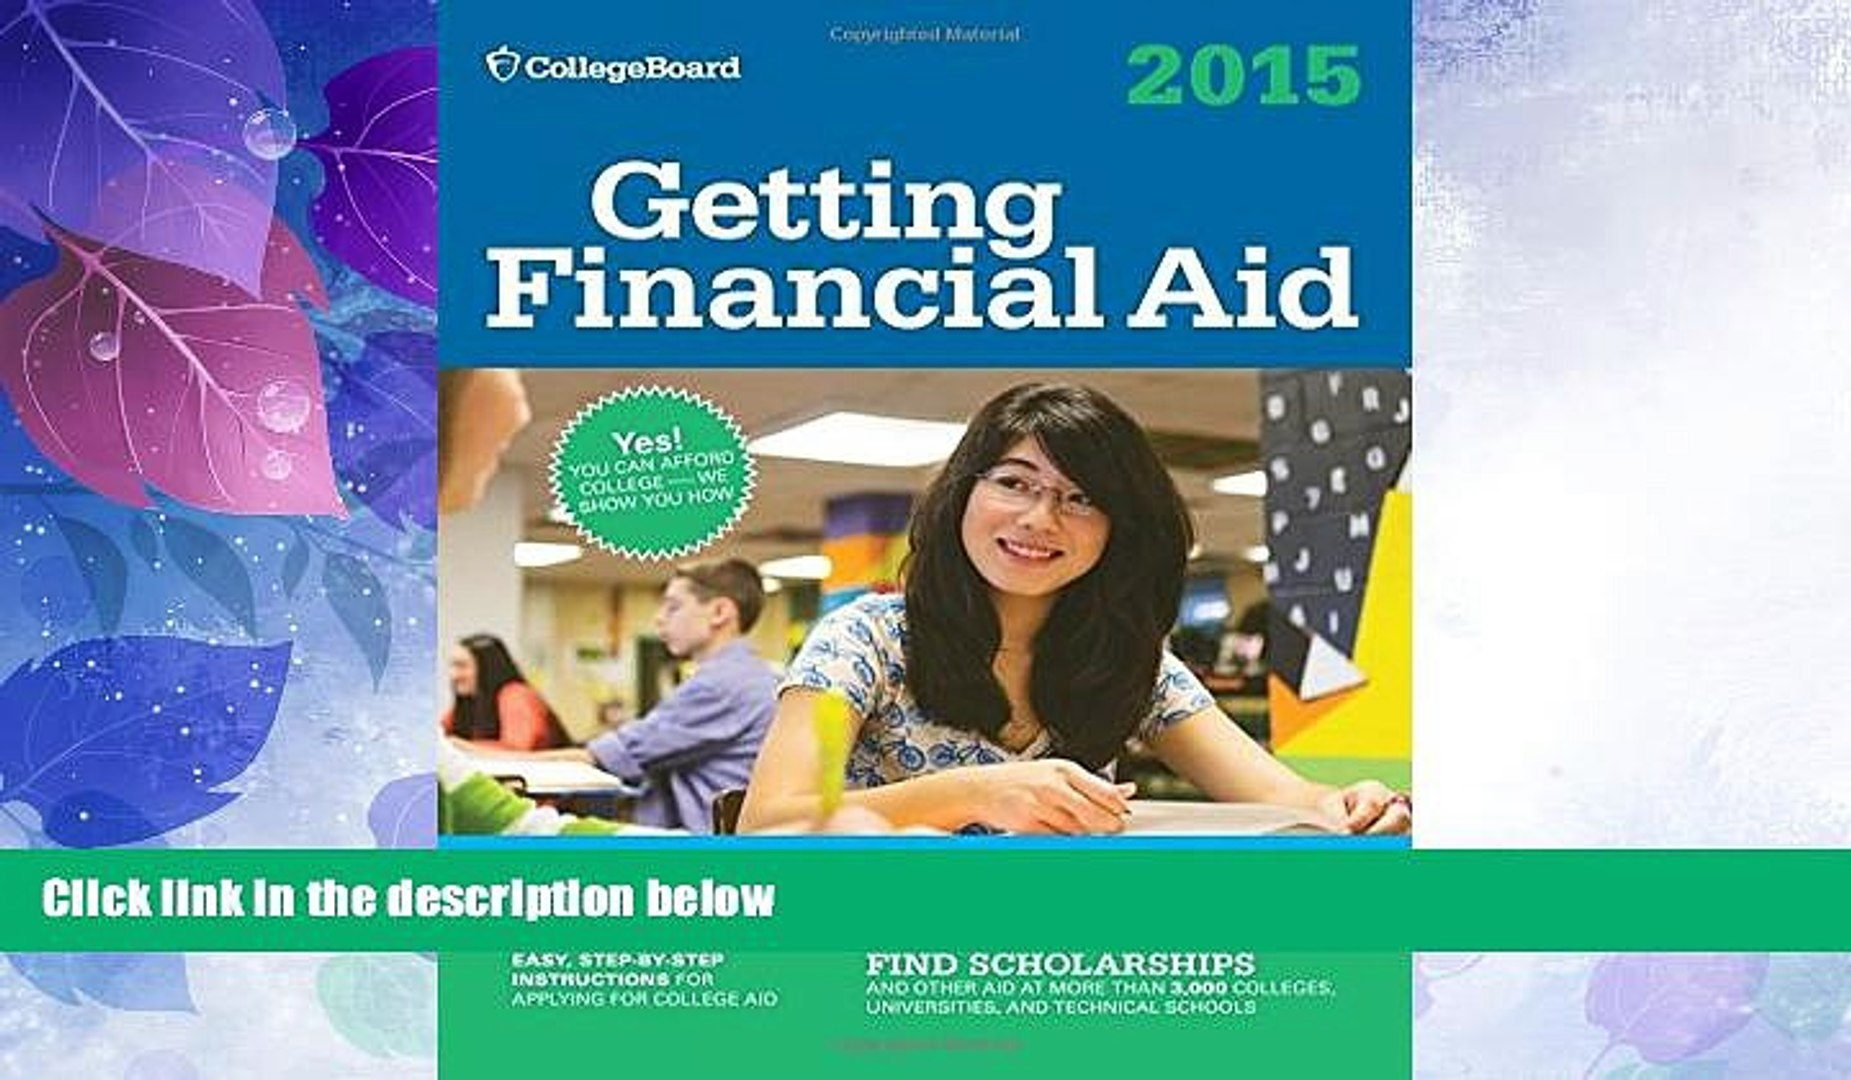 Price Getting Financial Aid 2015 (College Board Guide to Getting Financial Aid) The College Board